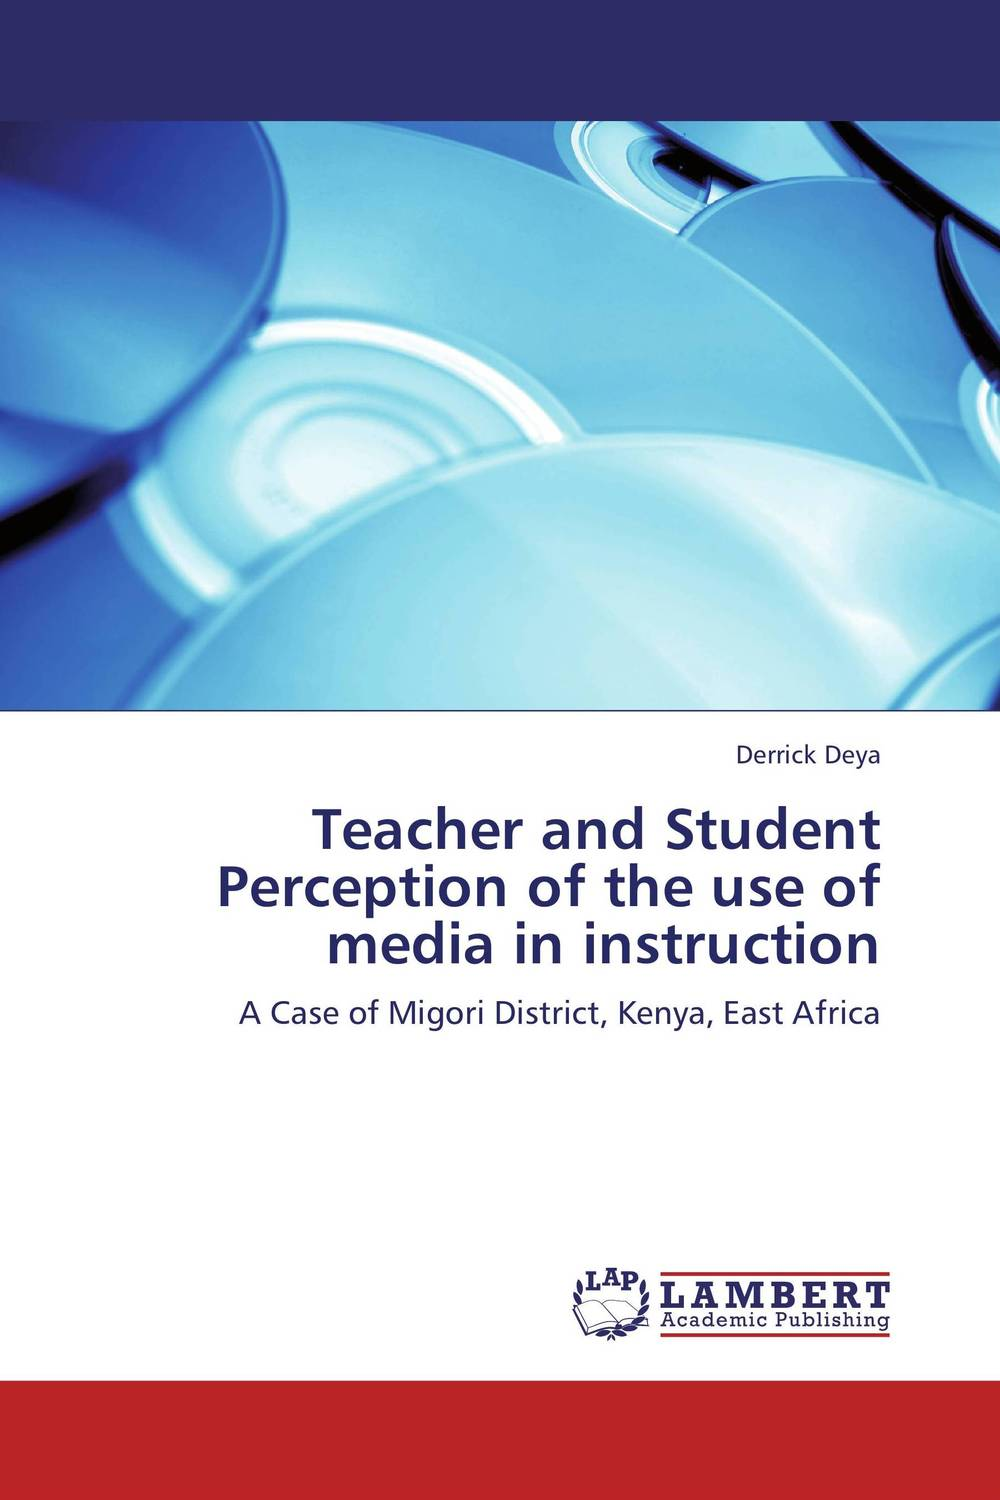 Teacher and Student Perception of the use of media in instruction the teacher